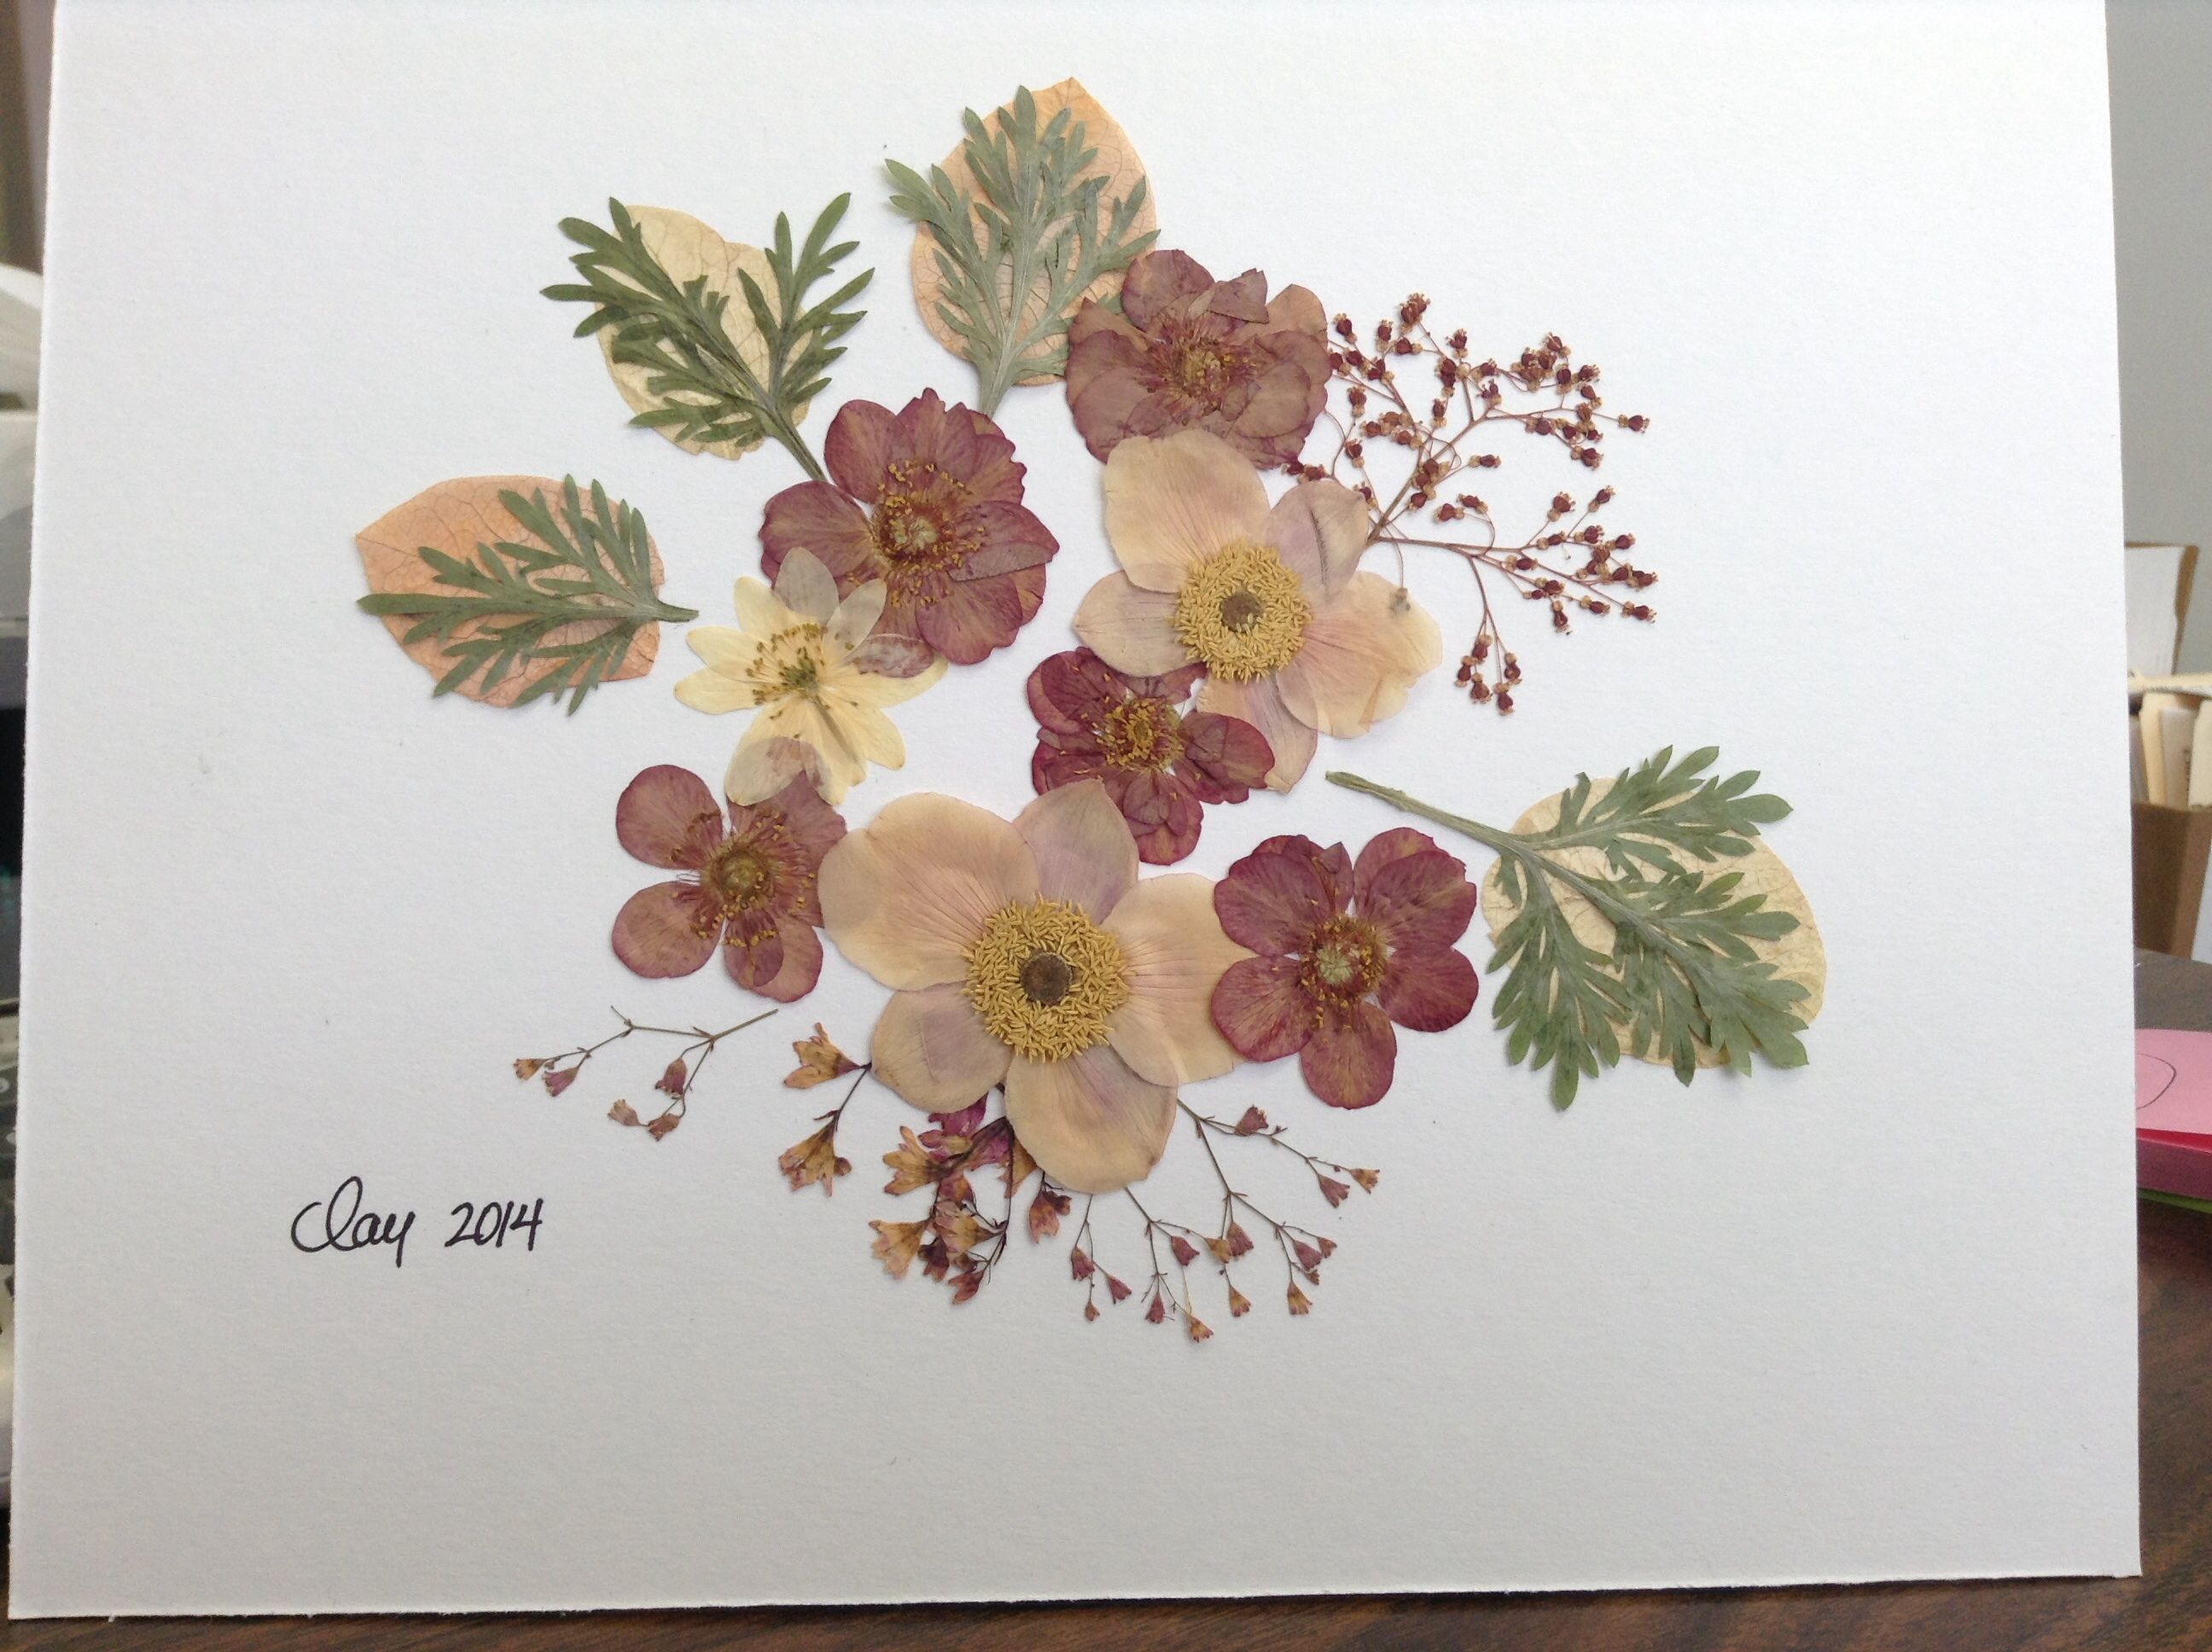 By Amie Clay Pressed Flower Art With Blooms And Leaves From The